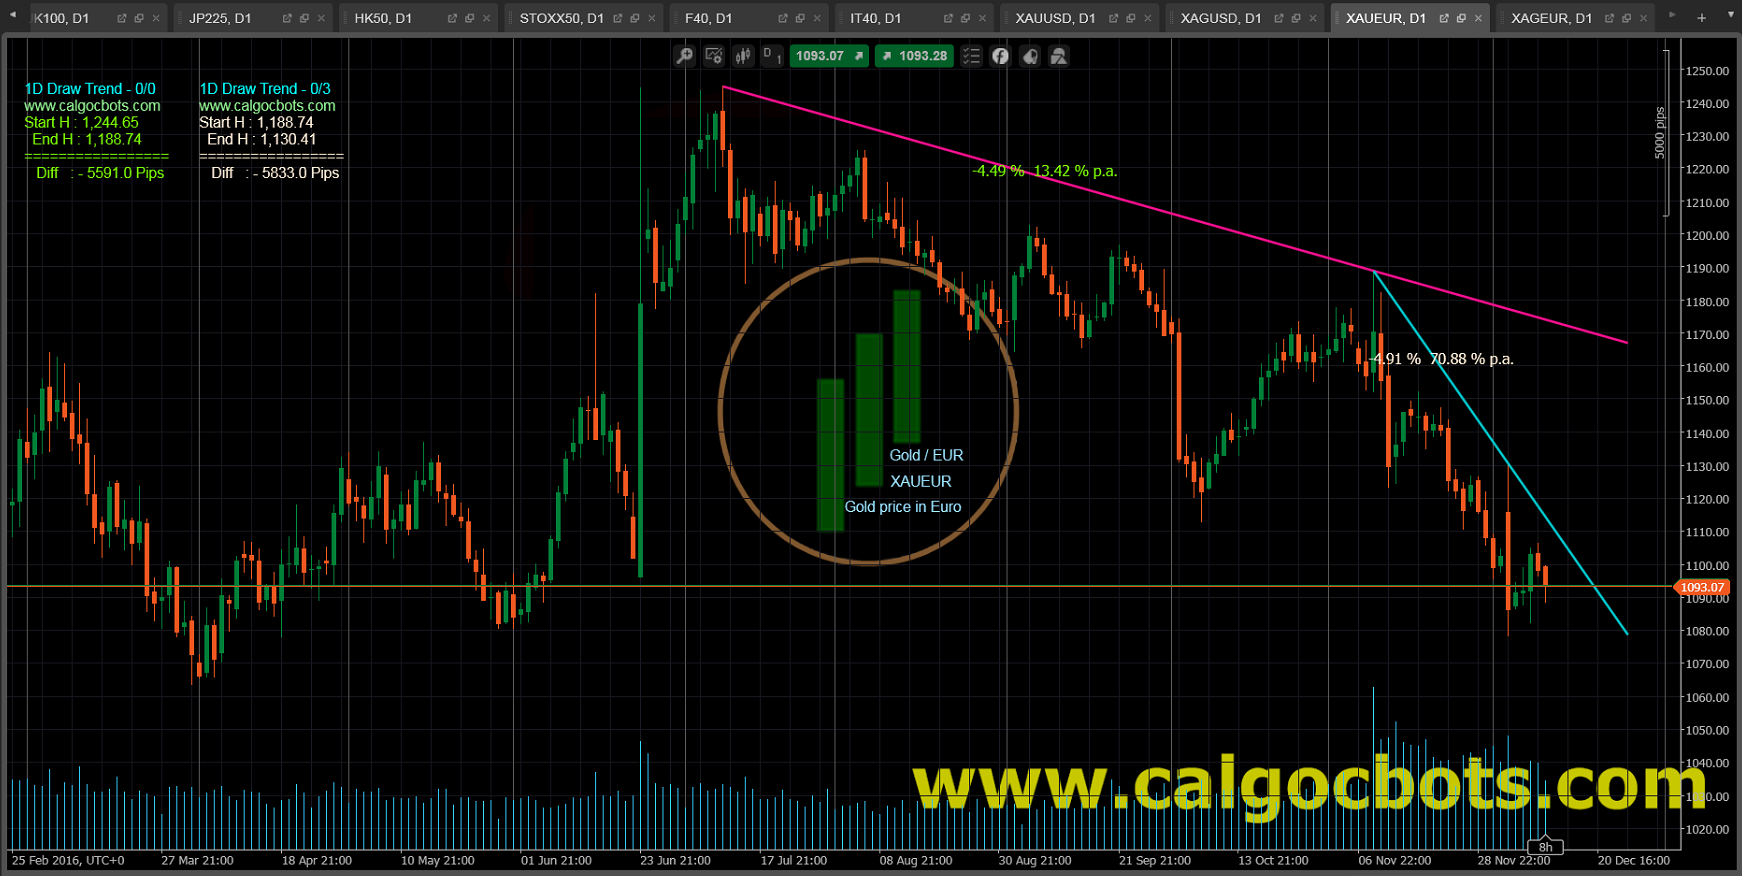 1D Draw Trend Color - cAlgo and cTrader Indicator - Gold EUR Spot - XAUEUR Daily Chart - 001